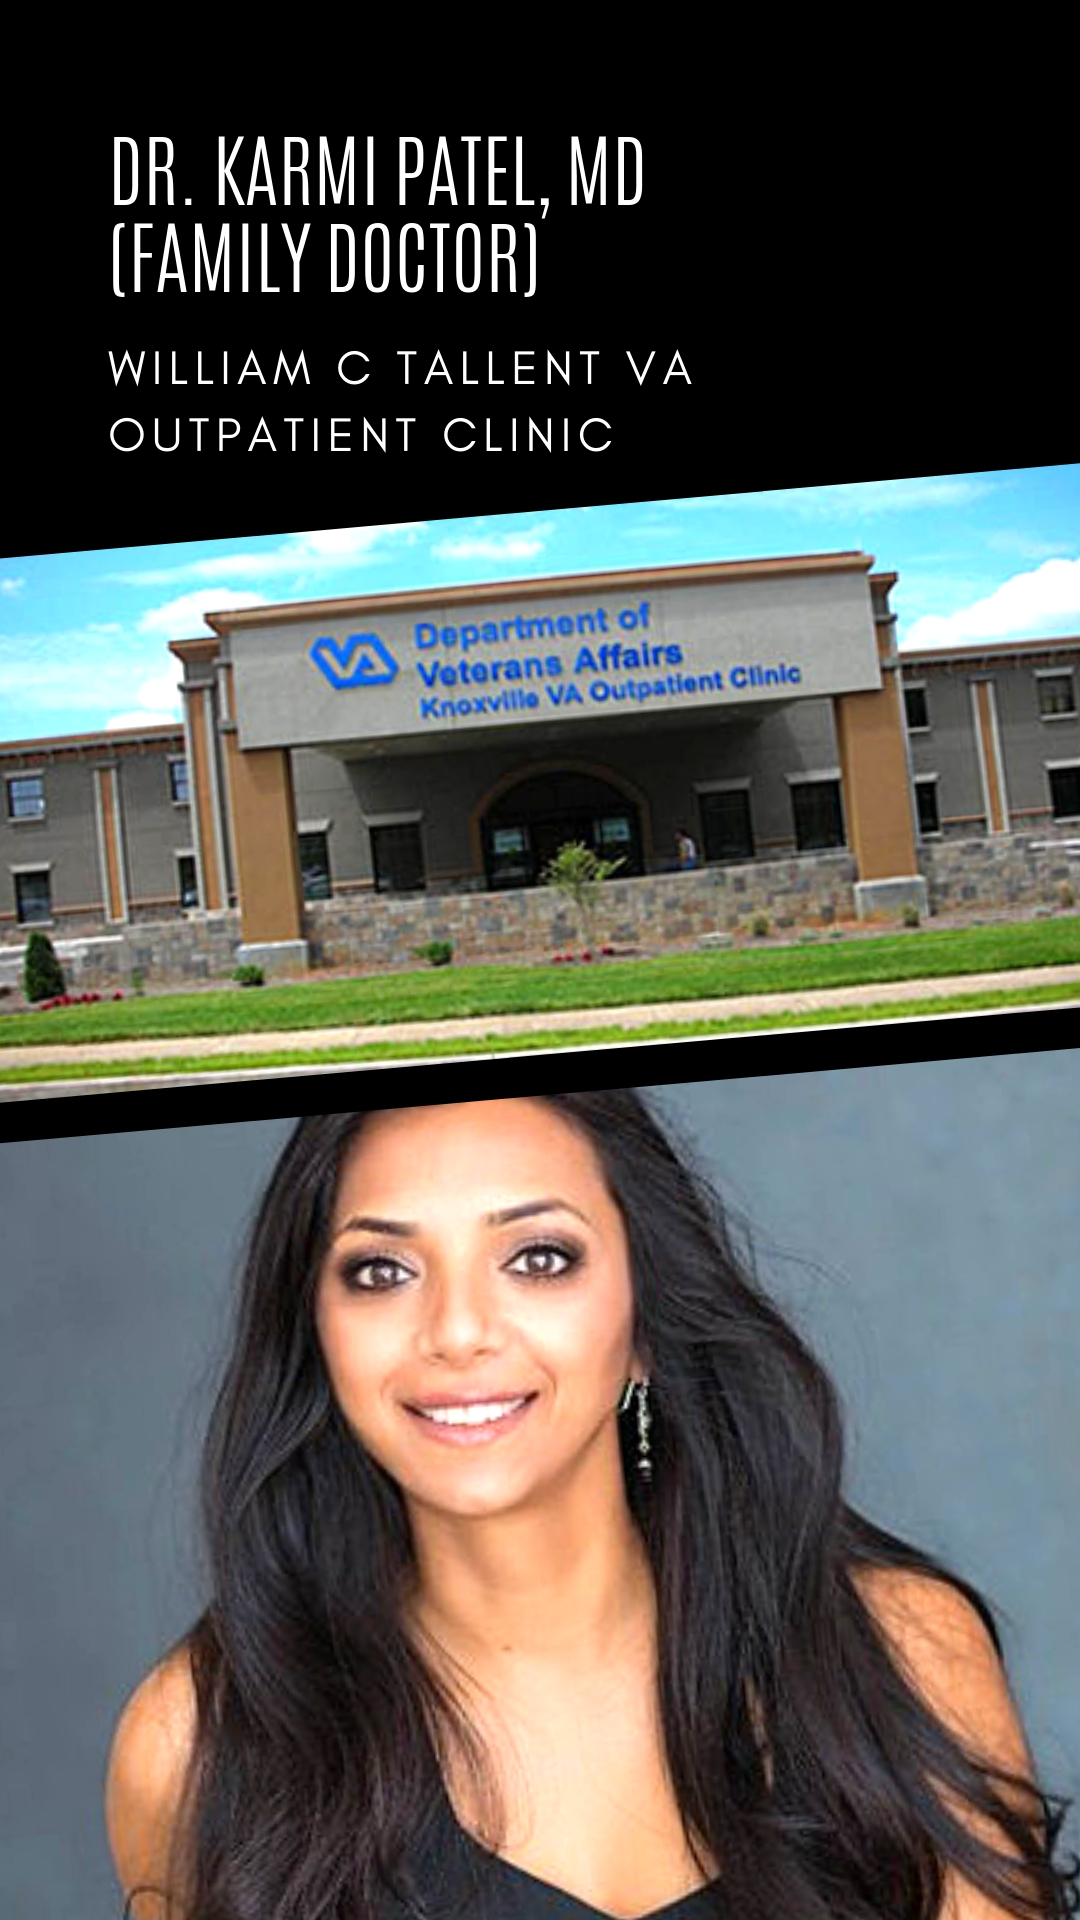 WE LOVE DR. KARMI AT THE VA!  Learn more here.